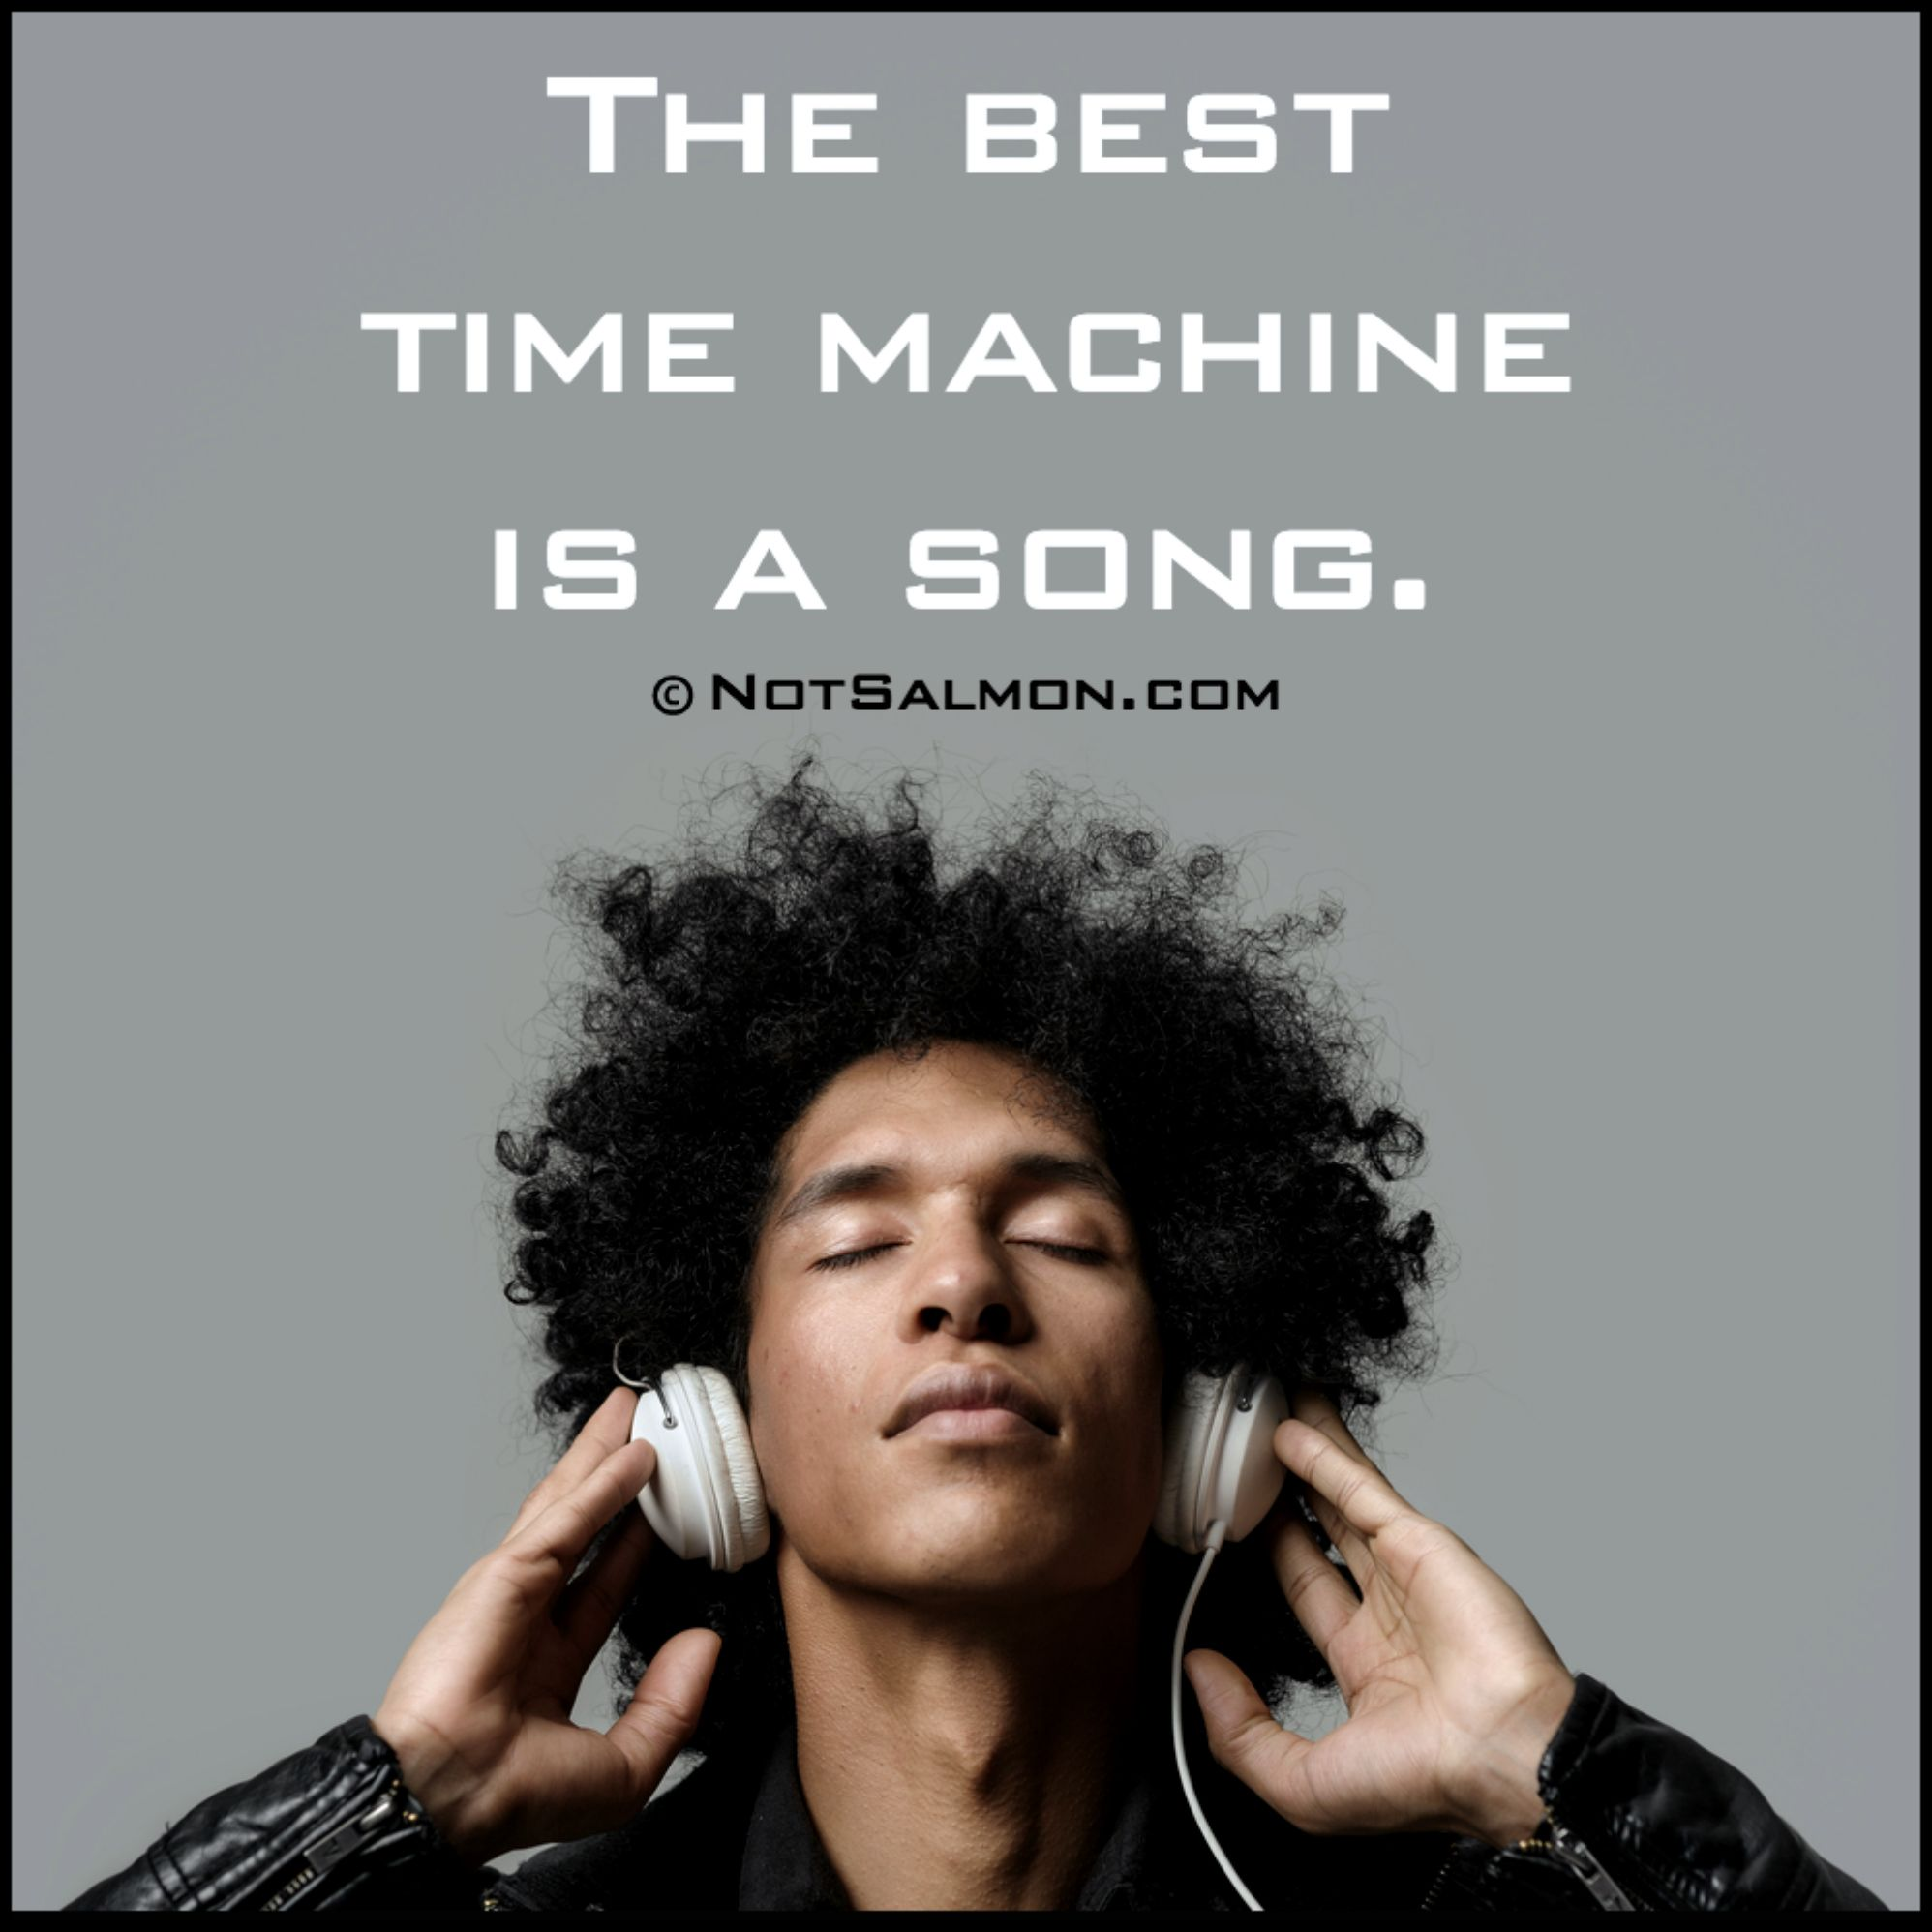 The Best Time Machine Is A Song #Music #Quotes #Word